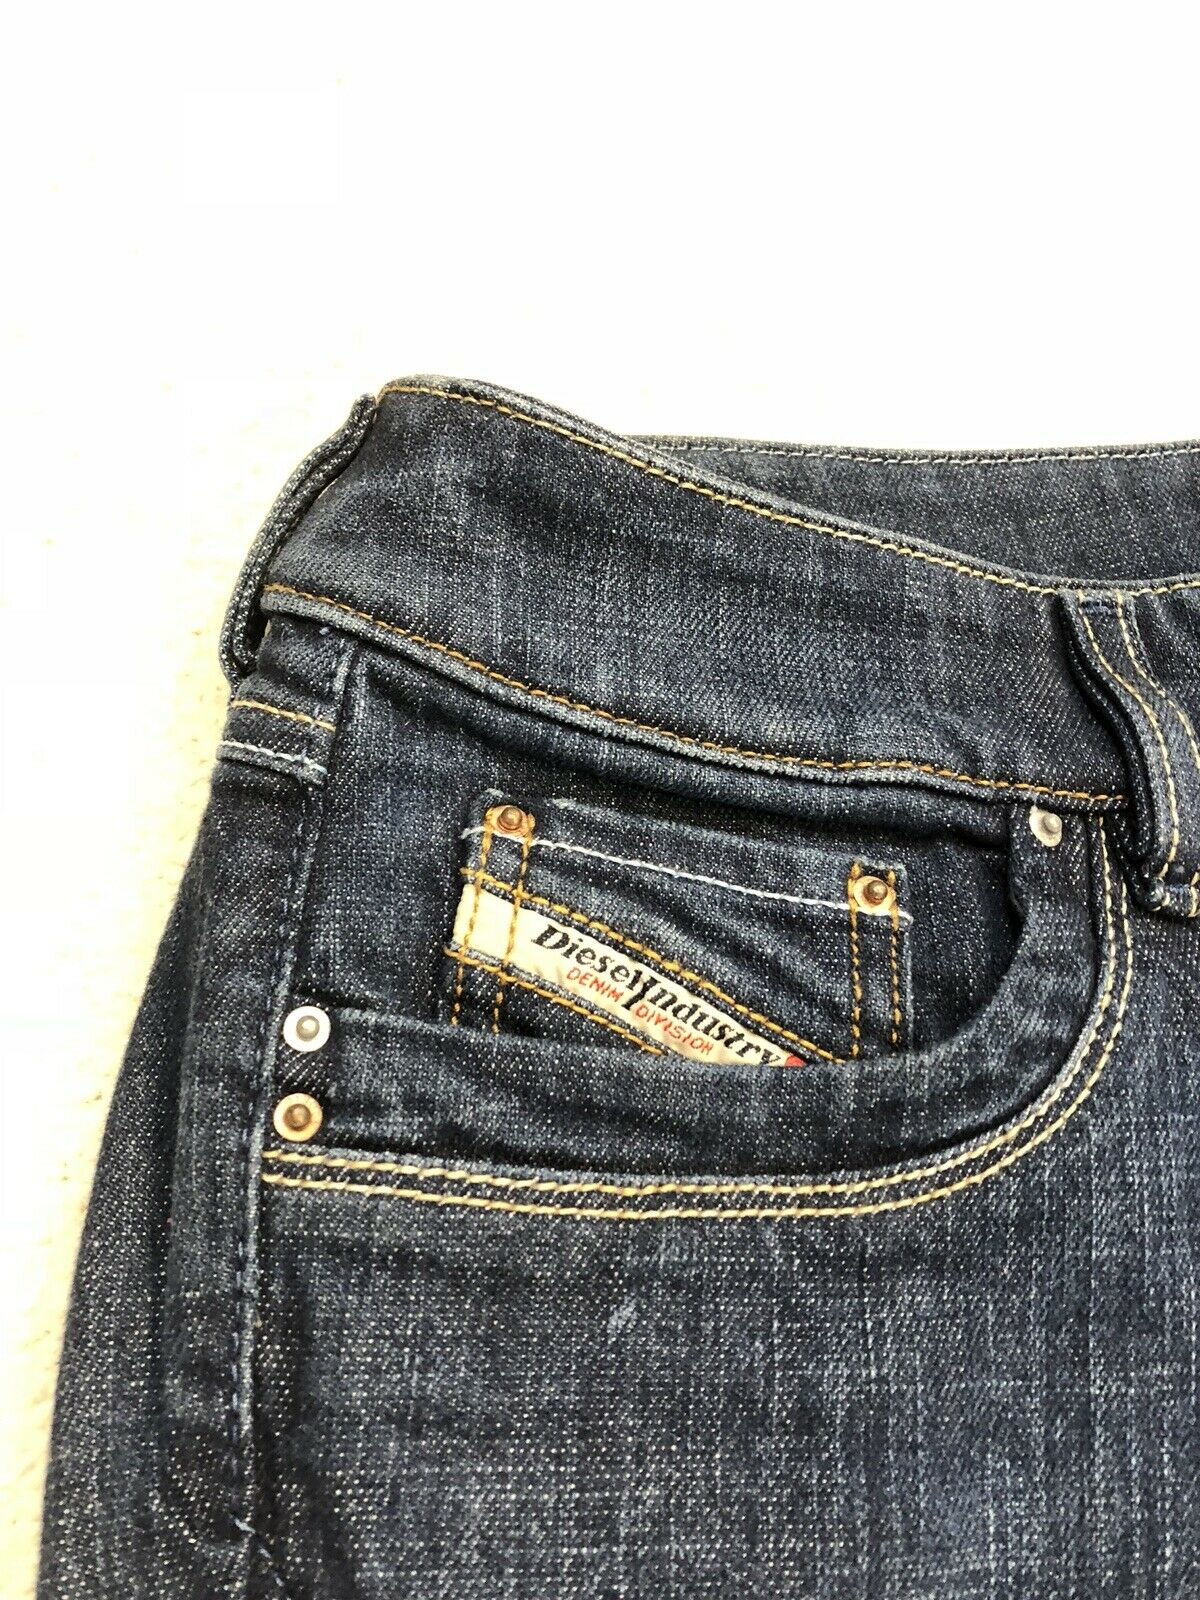 BNWOT Womens Diesel Flaired Jeans Size 30